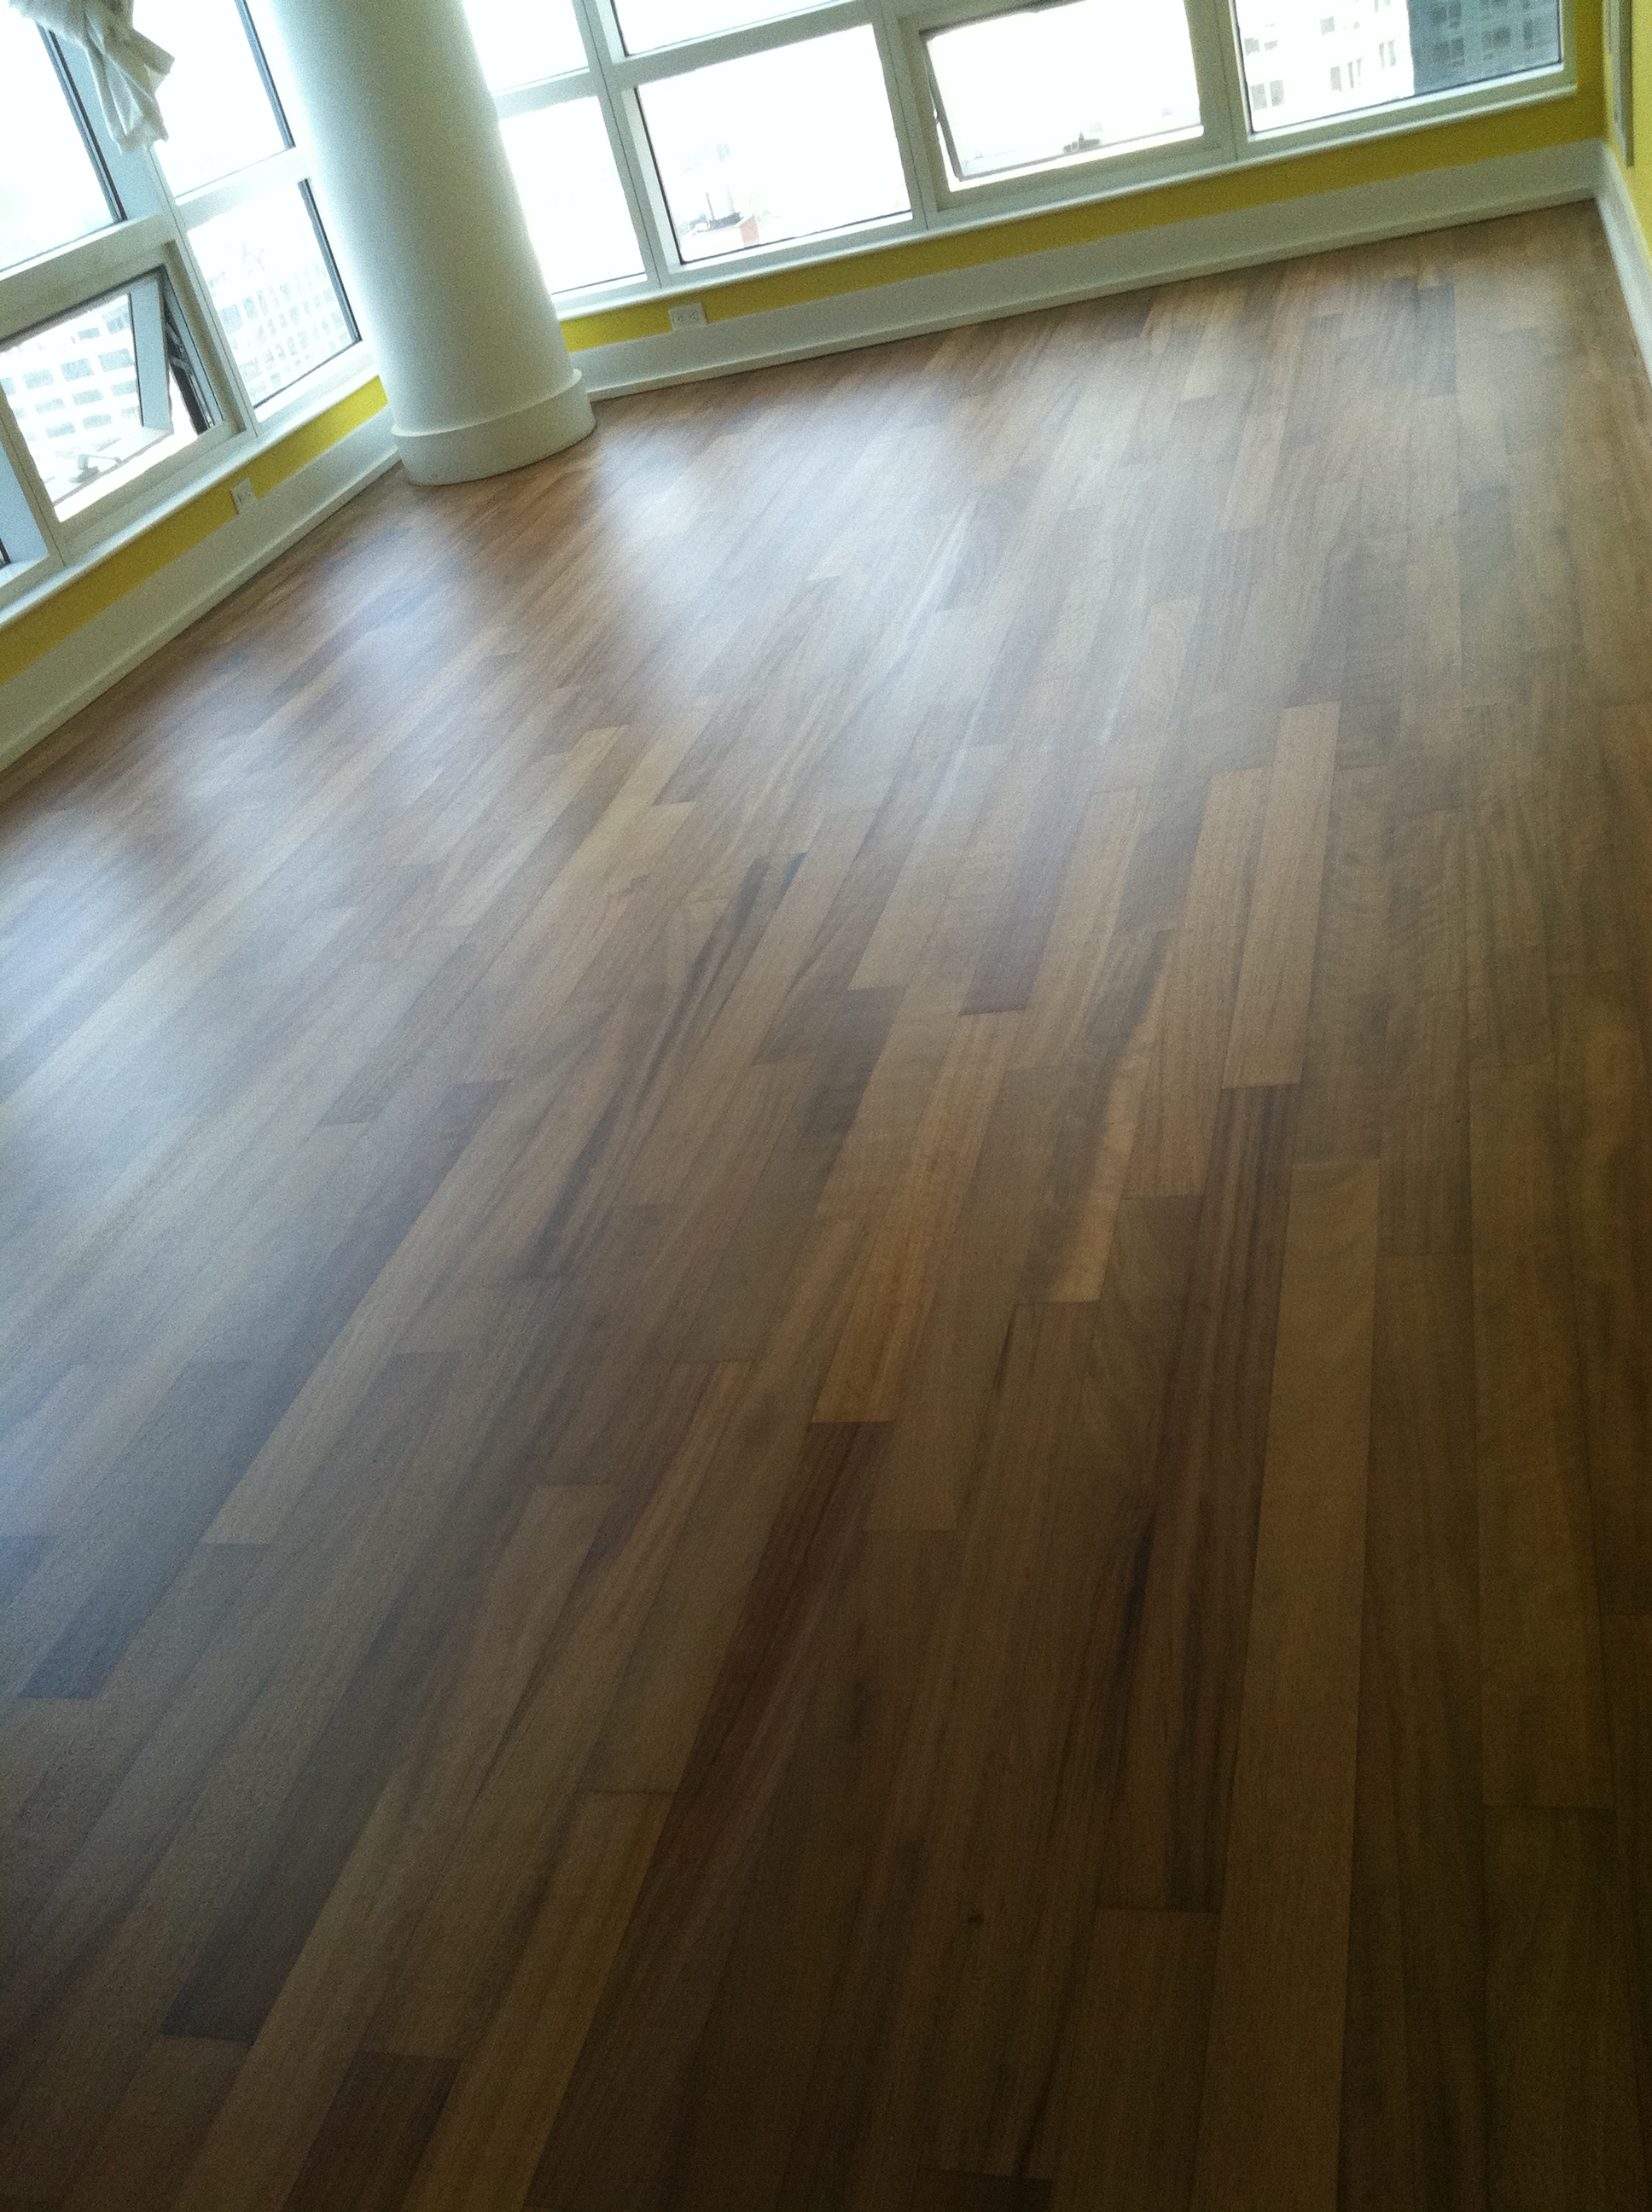 Somerset floors nj somerset flooring new jersey for Floors floors floors nj